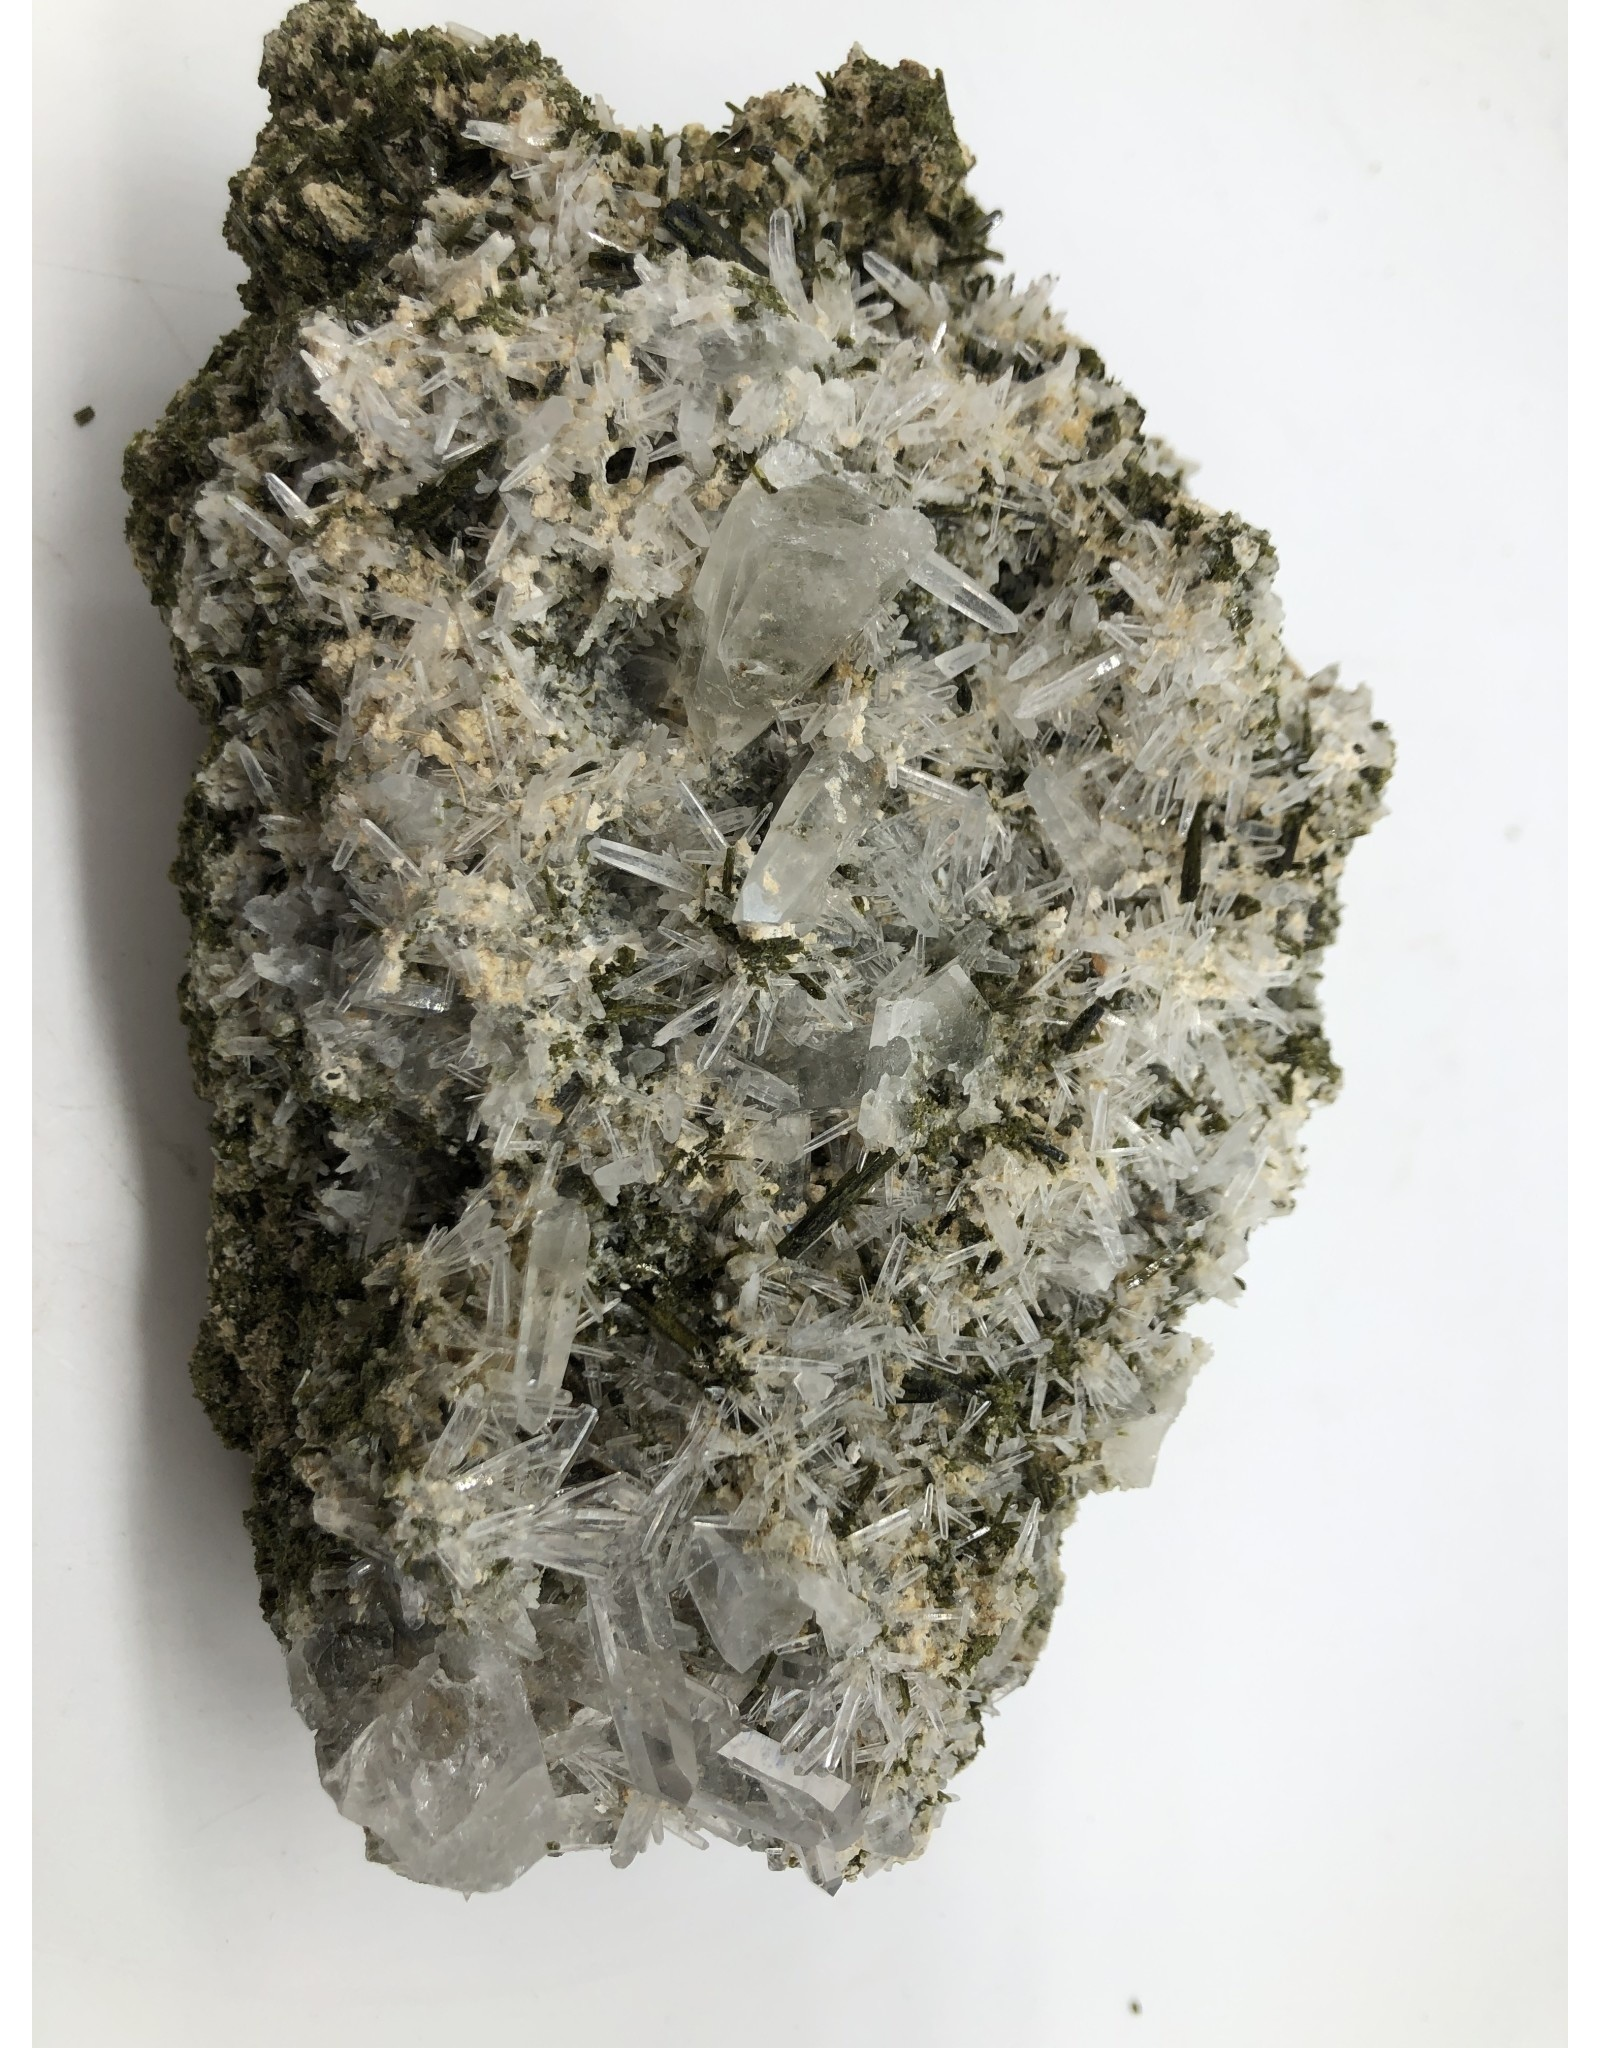 Epidote with Quartz Crystals (San Felipe Quarry, Peru)